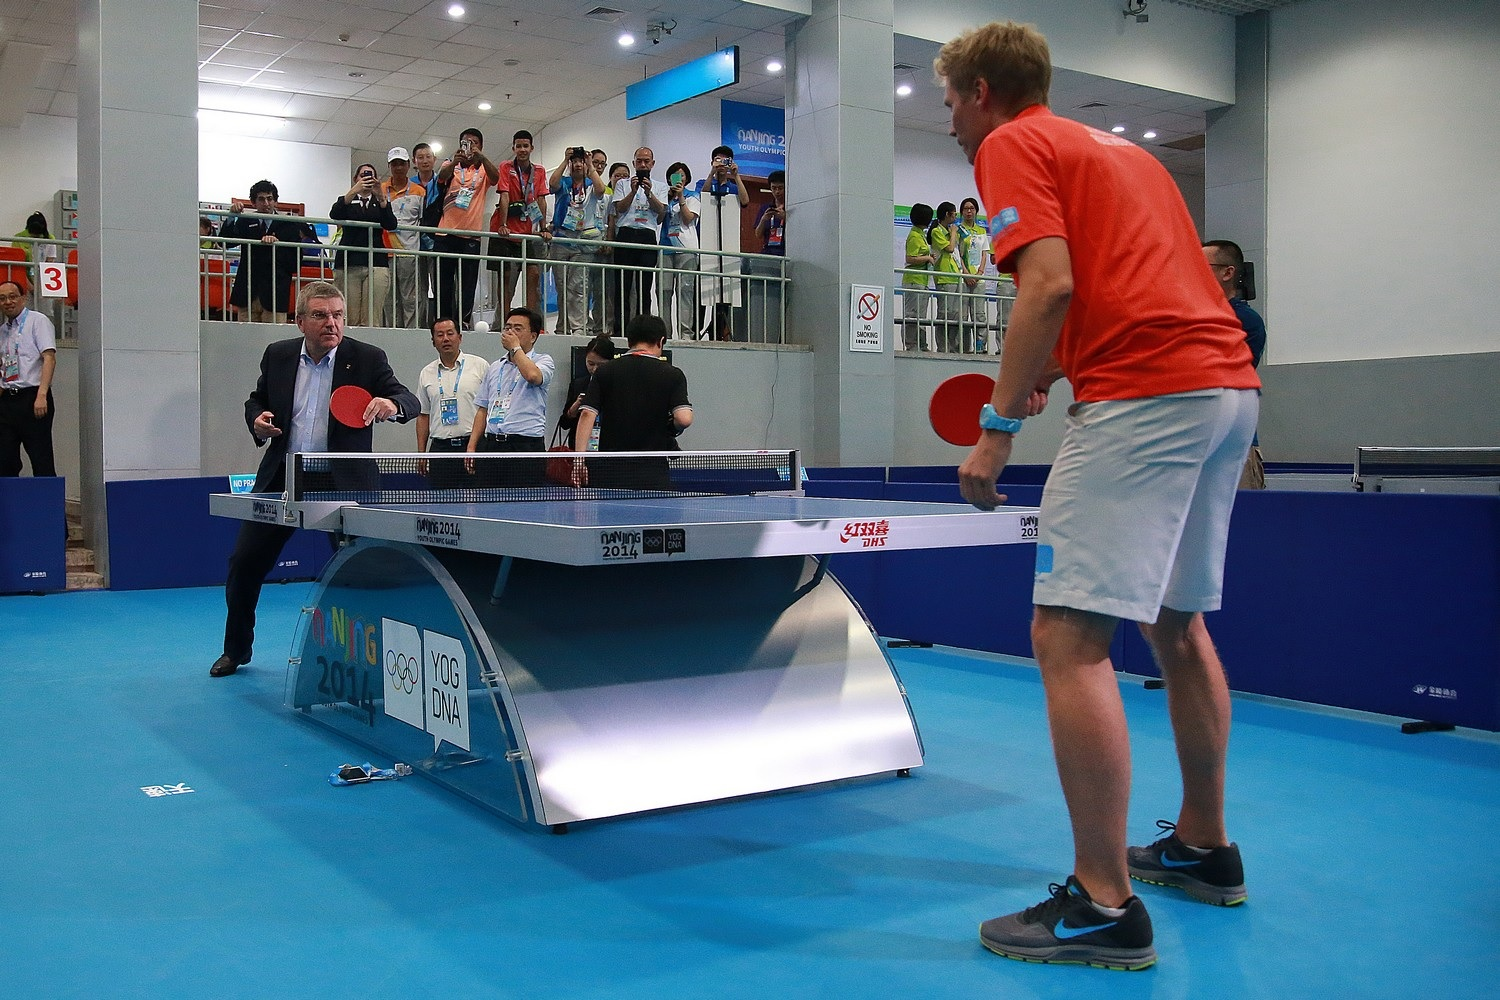 Thomas Bach practices some table tennis with Swedish great Jorgen Persson ©ITTF